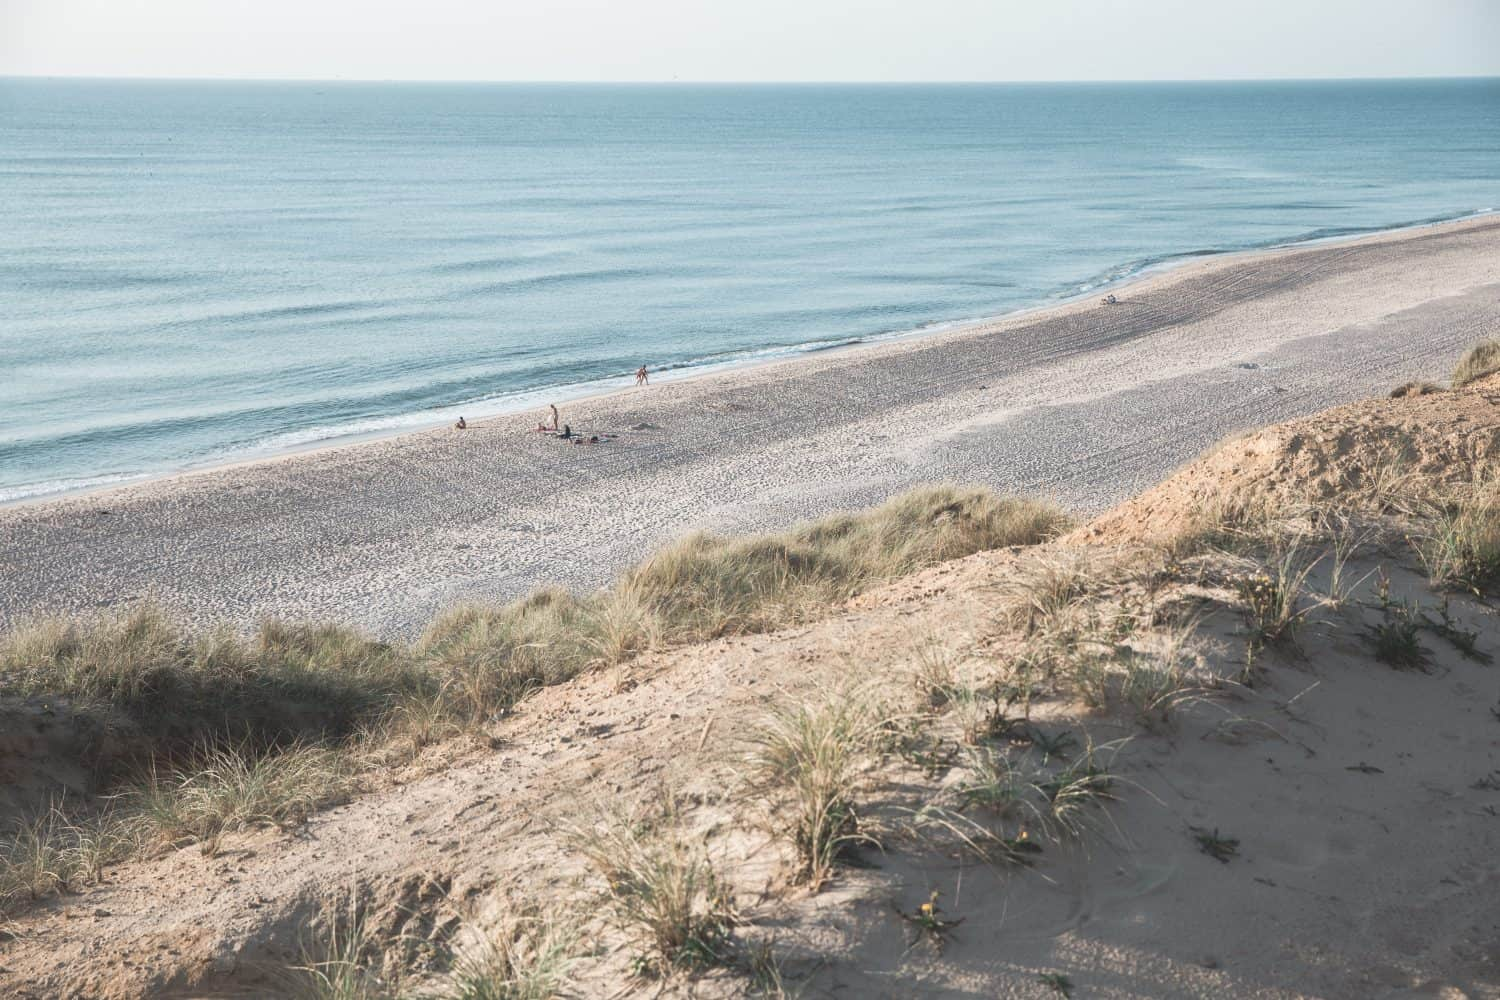 The Red Cliffs beach at Sylt in Germany. Sylt is one of 5 fun day trips from Hamburg!